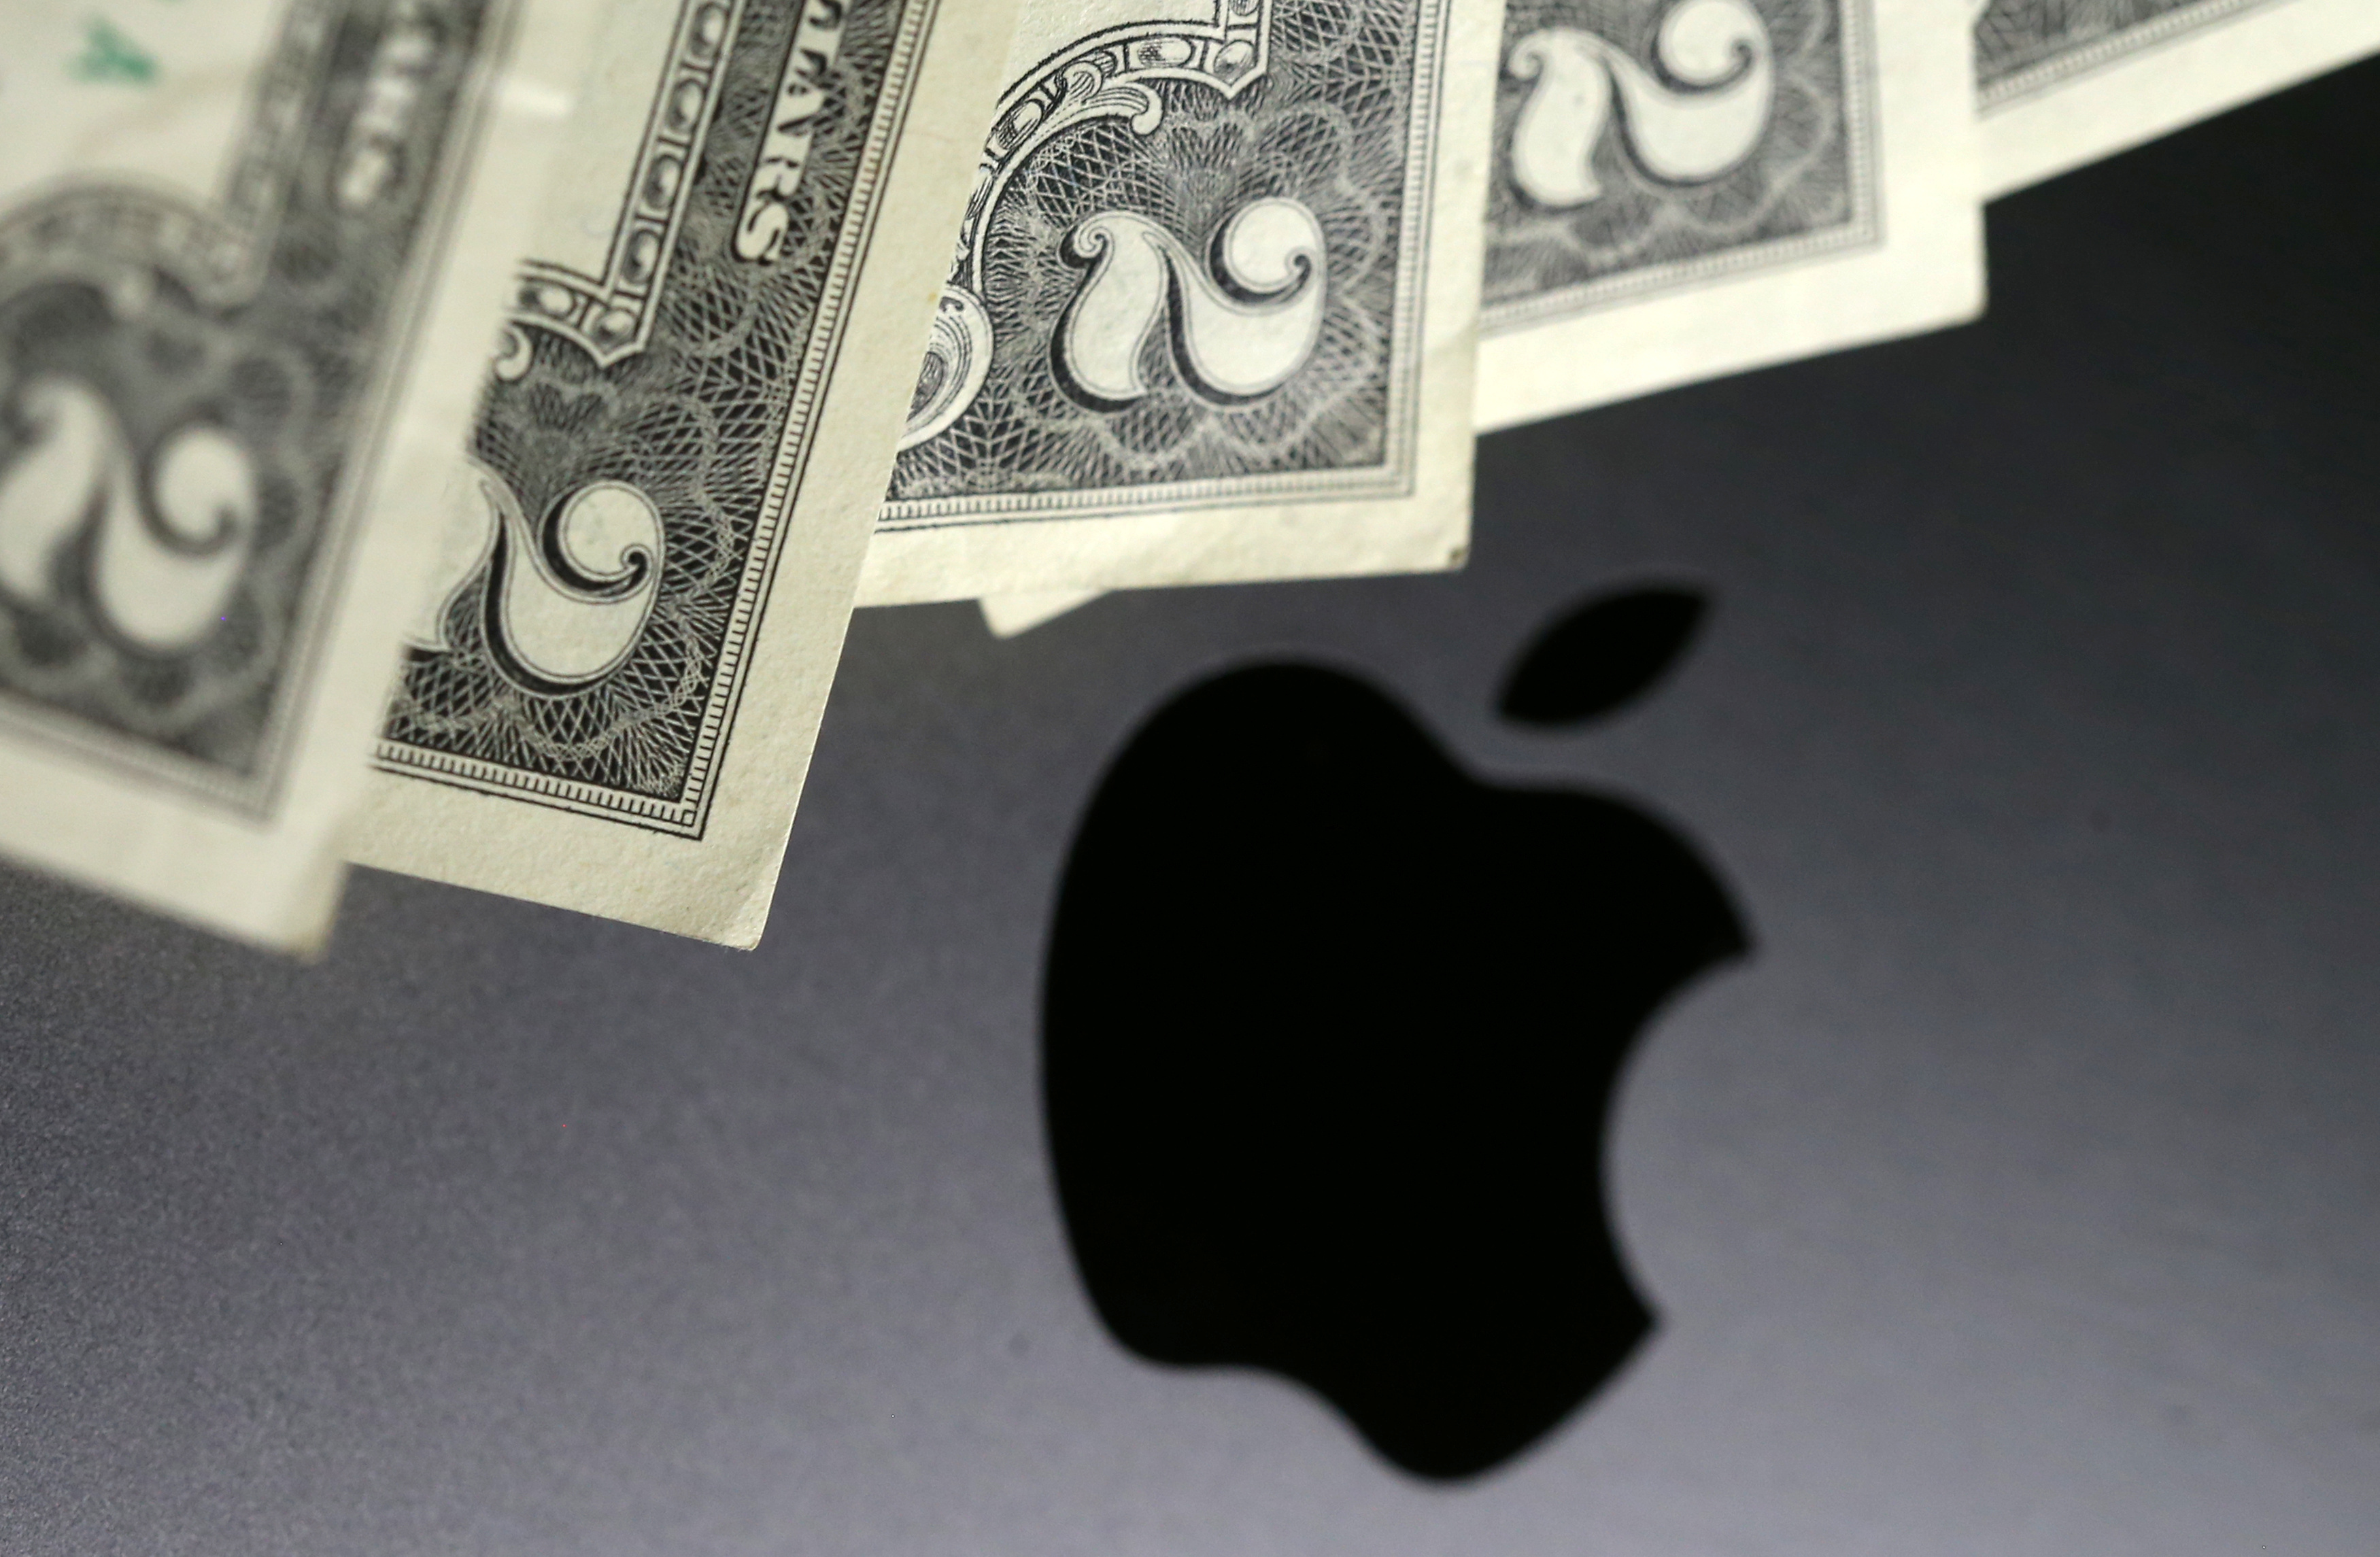 U.S. dollar banknotes are seen in front of the Apple logo in this photo illustration taken August 3, 2018. Photo illustration taken August 3, 2018. REUTERS/Dado Ruvic/Illustration